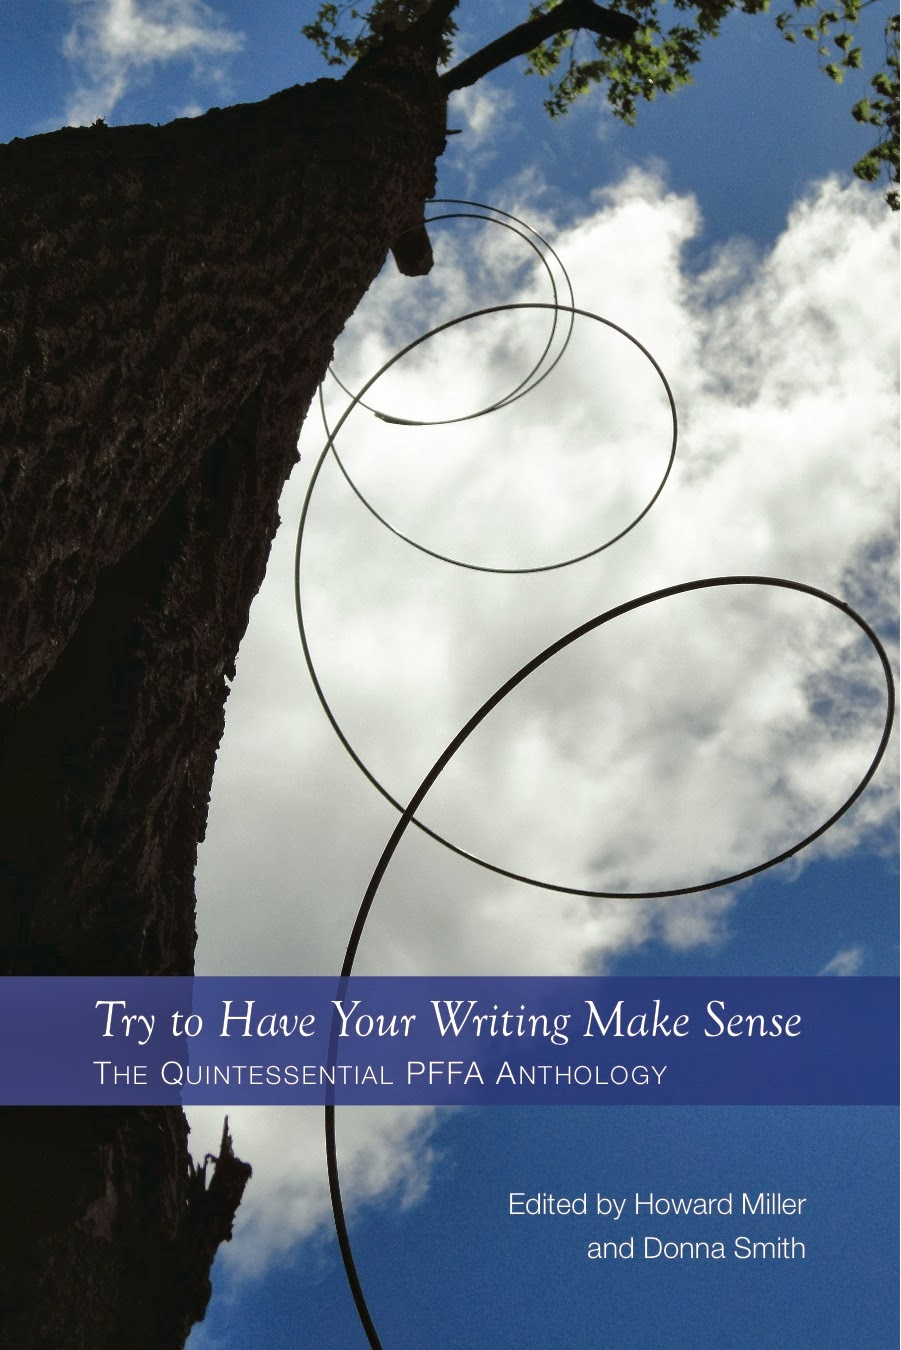 Try to Have Your Writing Make Sense: The Quintessential PFFA Anthology  — The first ever poetry anthology from the premier online workshop Poetry Free-for-all. Edited by workshop moderators Howard Miller and Donna Smith, this volume presents the writing of new and established poets. The contributors, who come from all over the world, are Emilio Aguilera, David Gwilym Anthony, Margit Berman, Nicolette Bethel, Rachael Briggs, Laurie Clemens, Malinda Crispin, Risa Denenberg, Vicky MacDonald Harris, M.E. Hope, Rene Kennedy, Jee Leong Koh, Mike Lane, Anne Lindsay, Gaye McKenney, Howard Miller, Donna Smith, Suzanne Tidei, Meredith Weiers, and Dave Wiseman.  6x9, perfect bound, 52 pages, $15.00.   Buy from Amazon.